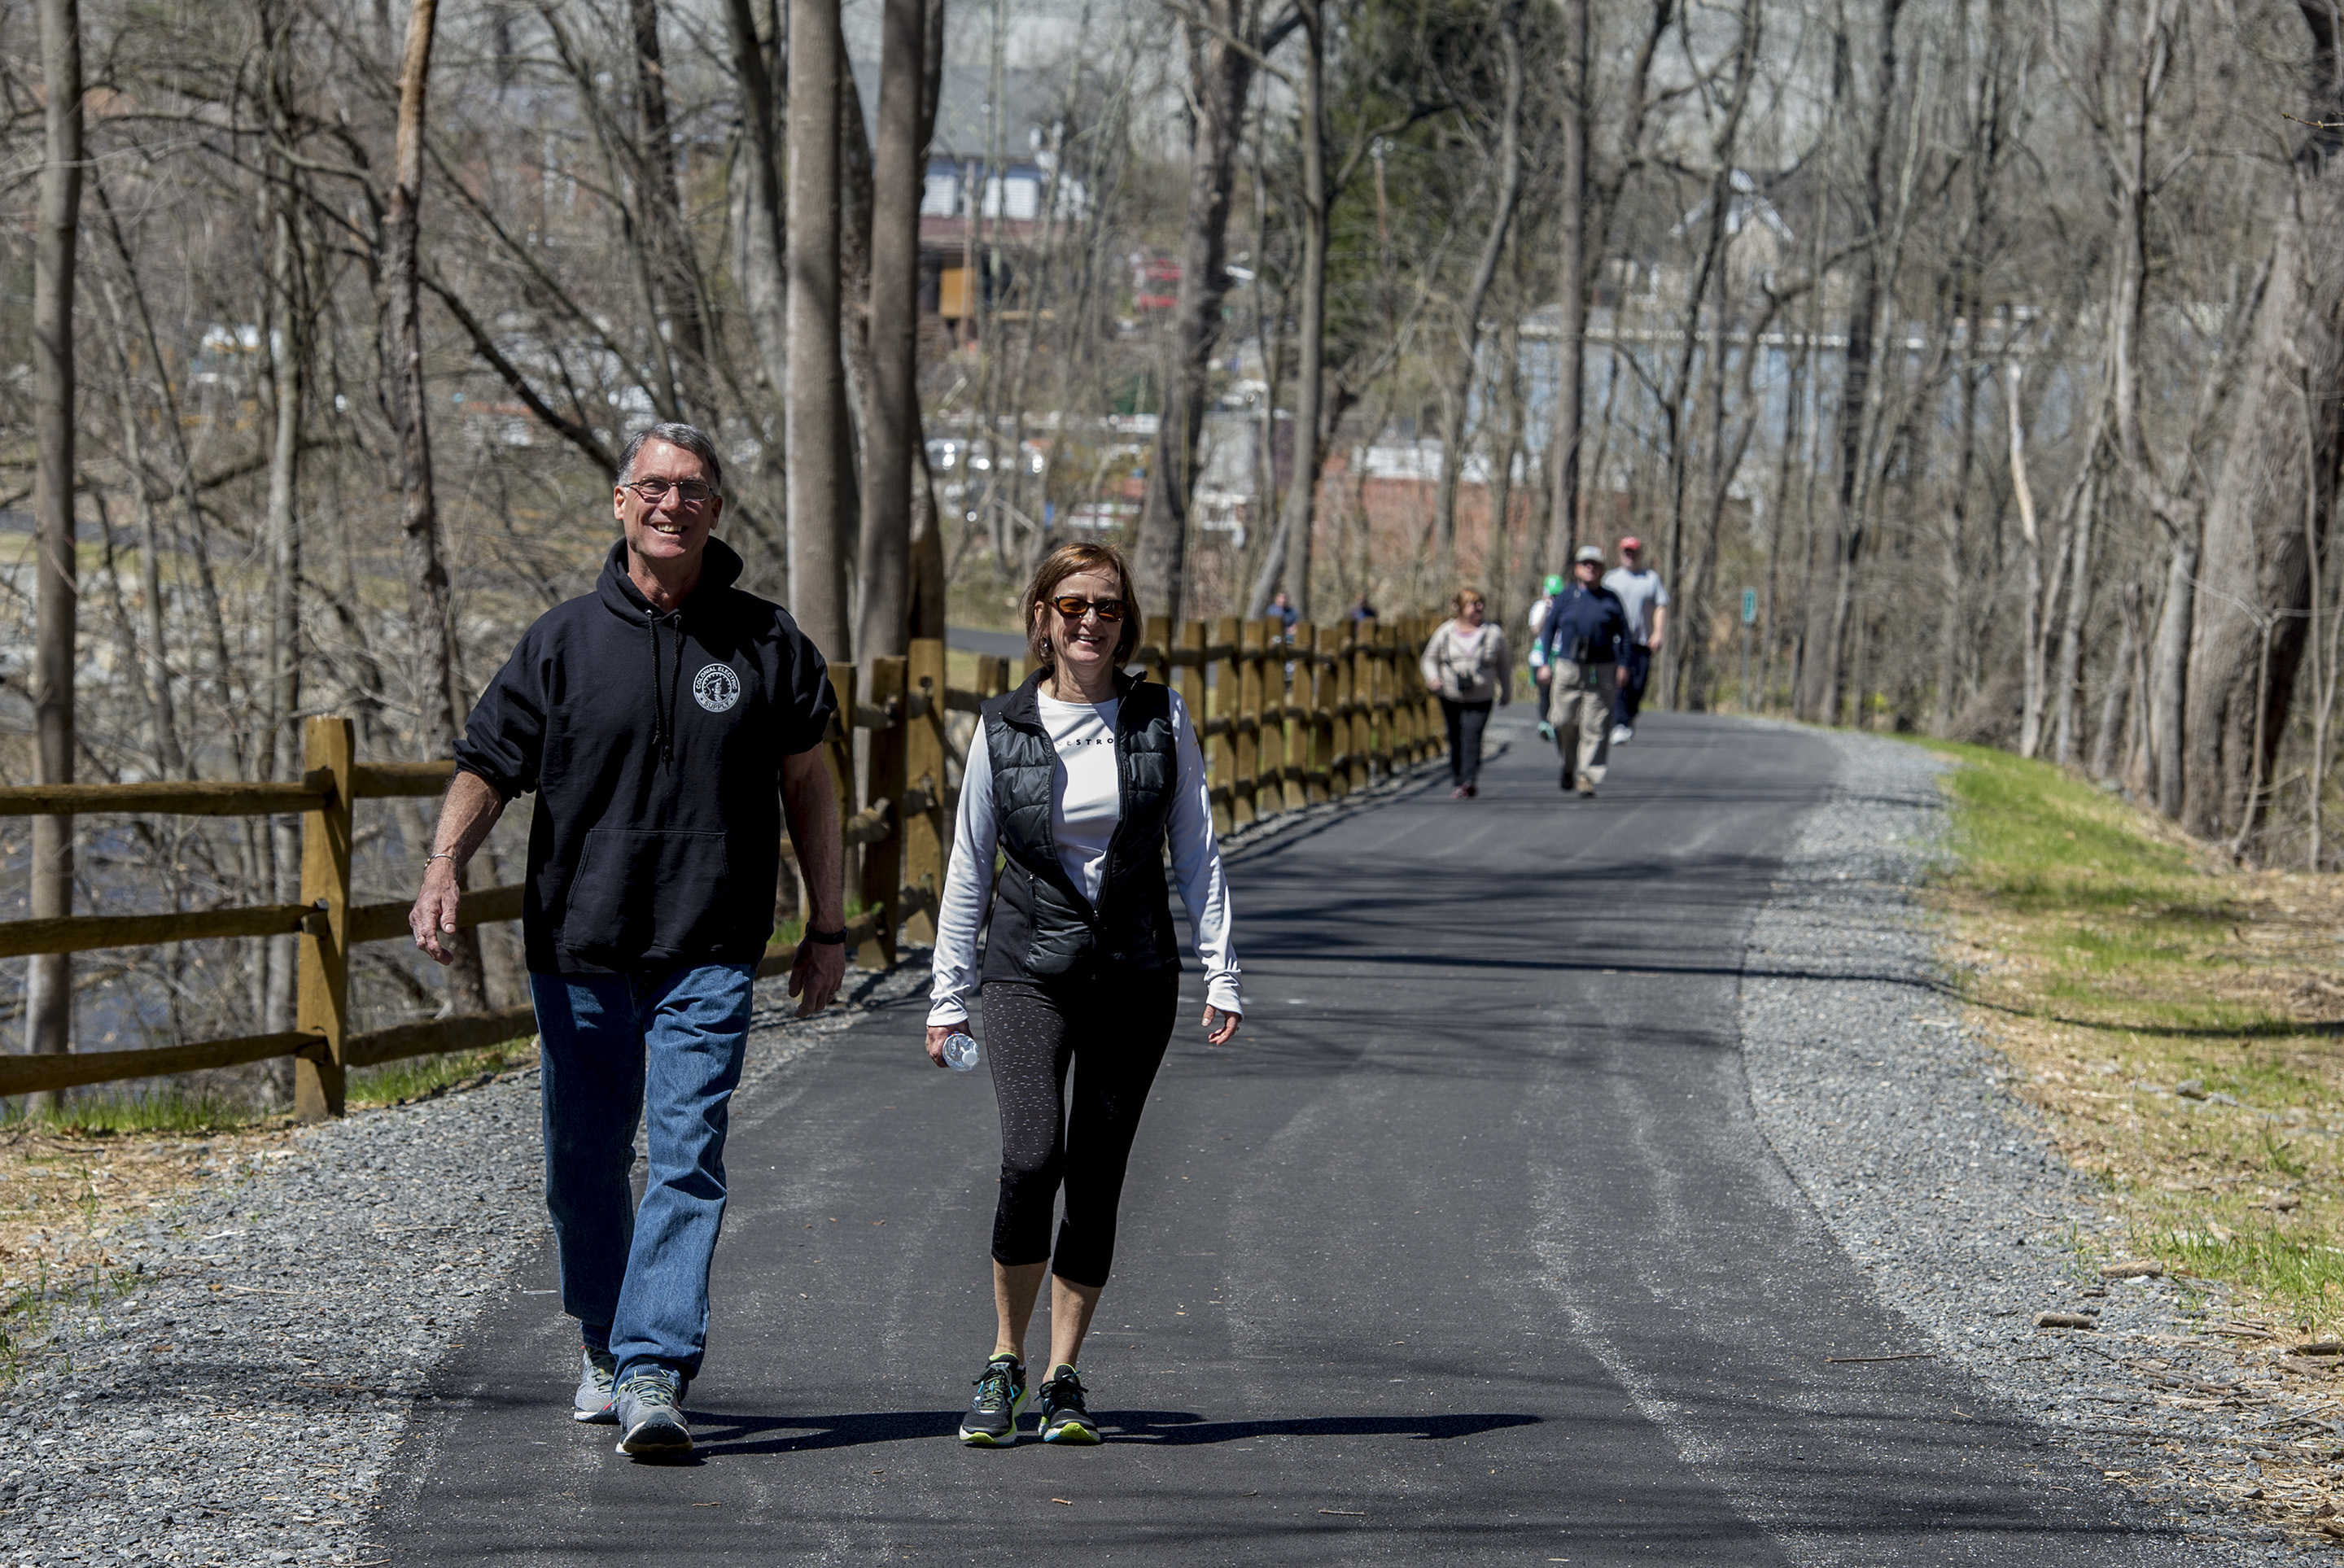 Mike and Robin Salvatore, Garnet Valley, walk along the newly dedicated bike/walking path in Middletown, Delaware County April 9, 2017.